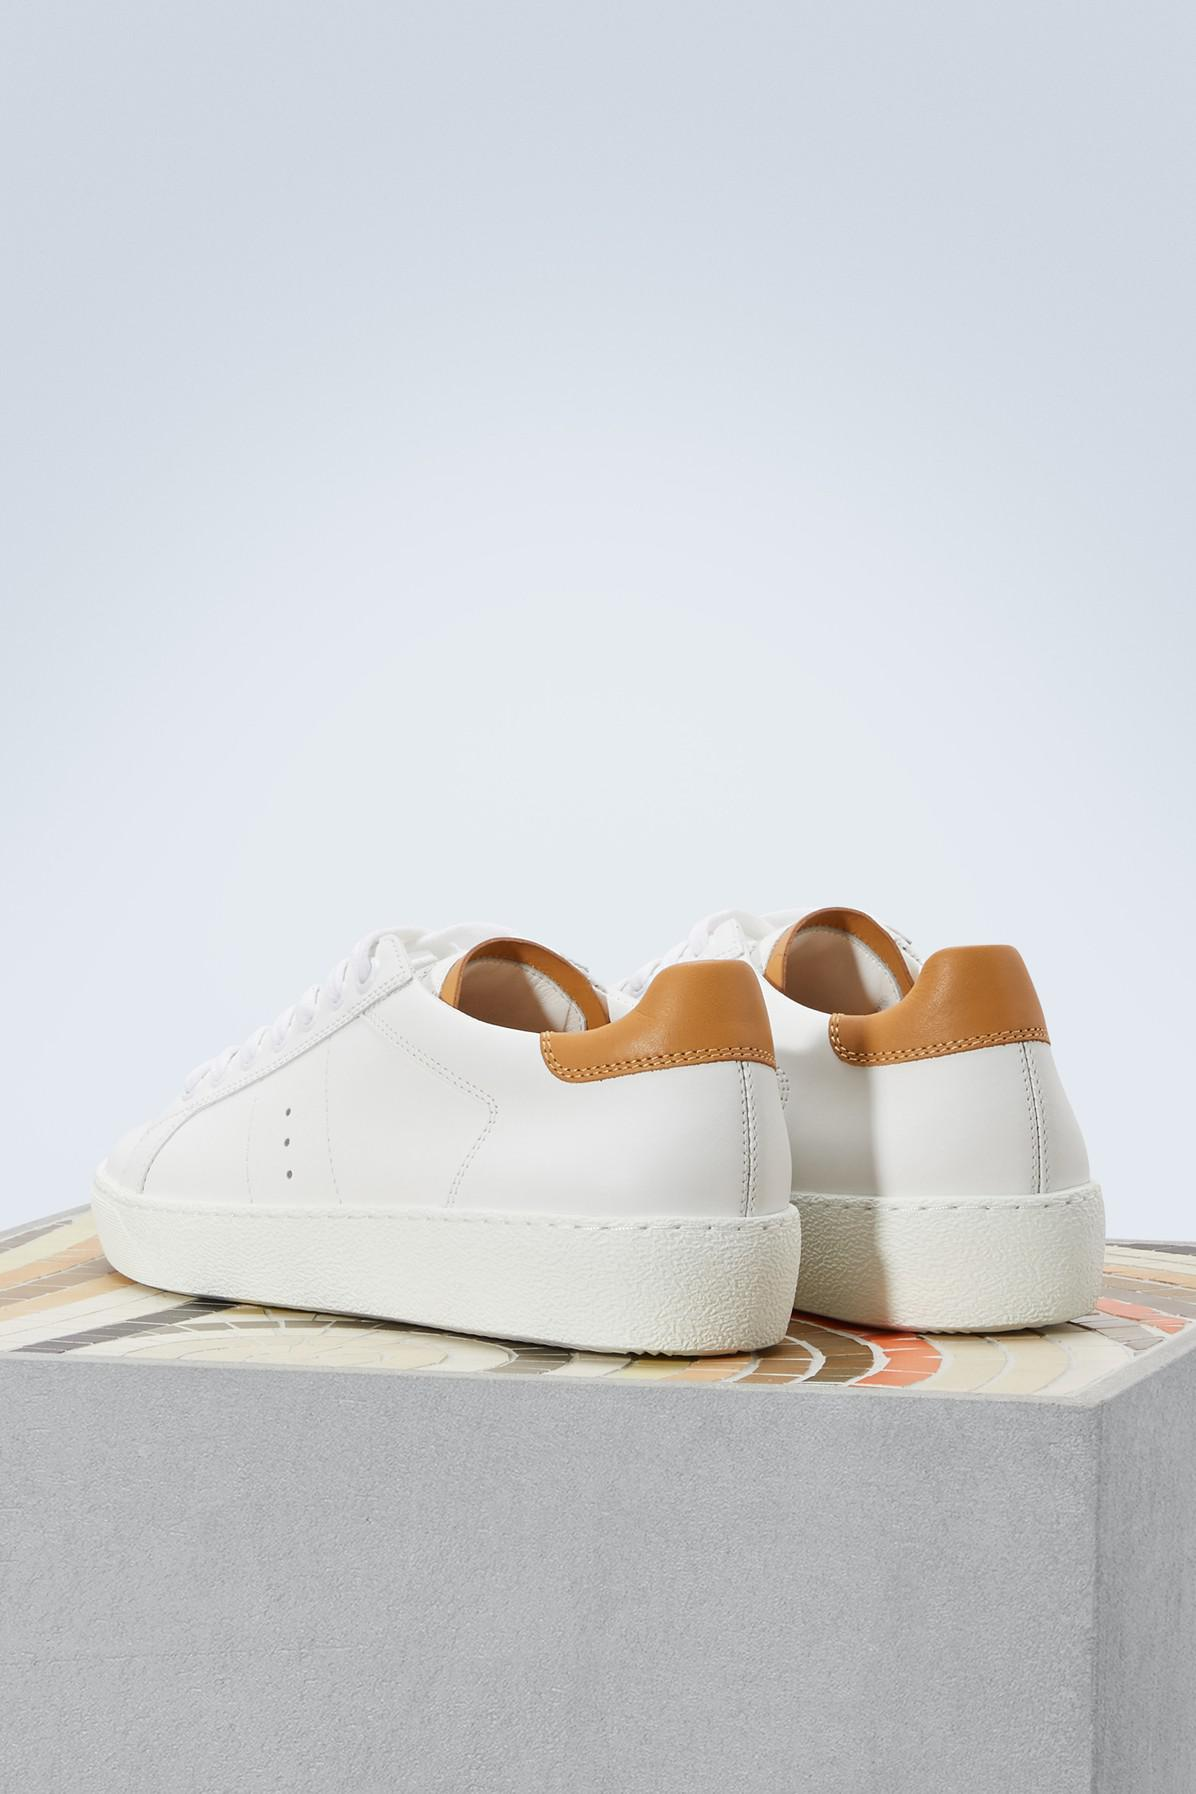 Fashion Style Online Clearance Shop J.M. Weston White and camel smooth calfskin sneakers Discount Fashionable Sale Collections IUtFiAk2u